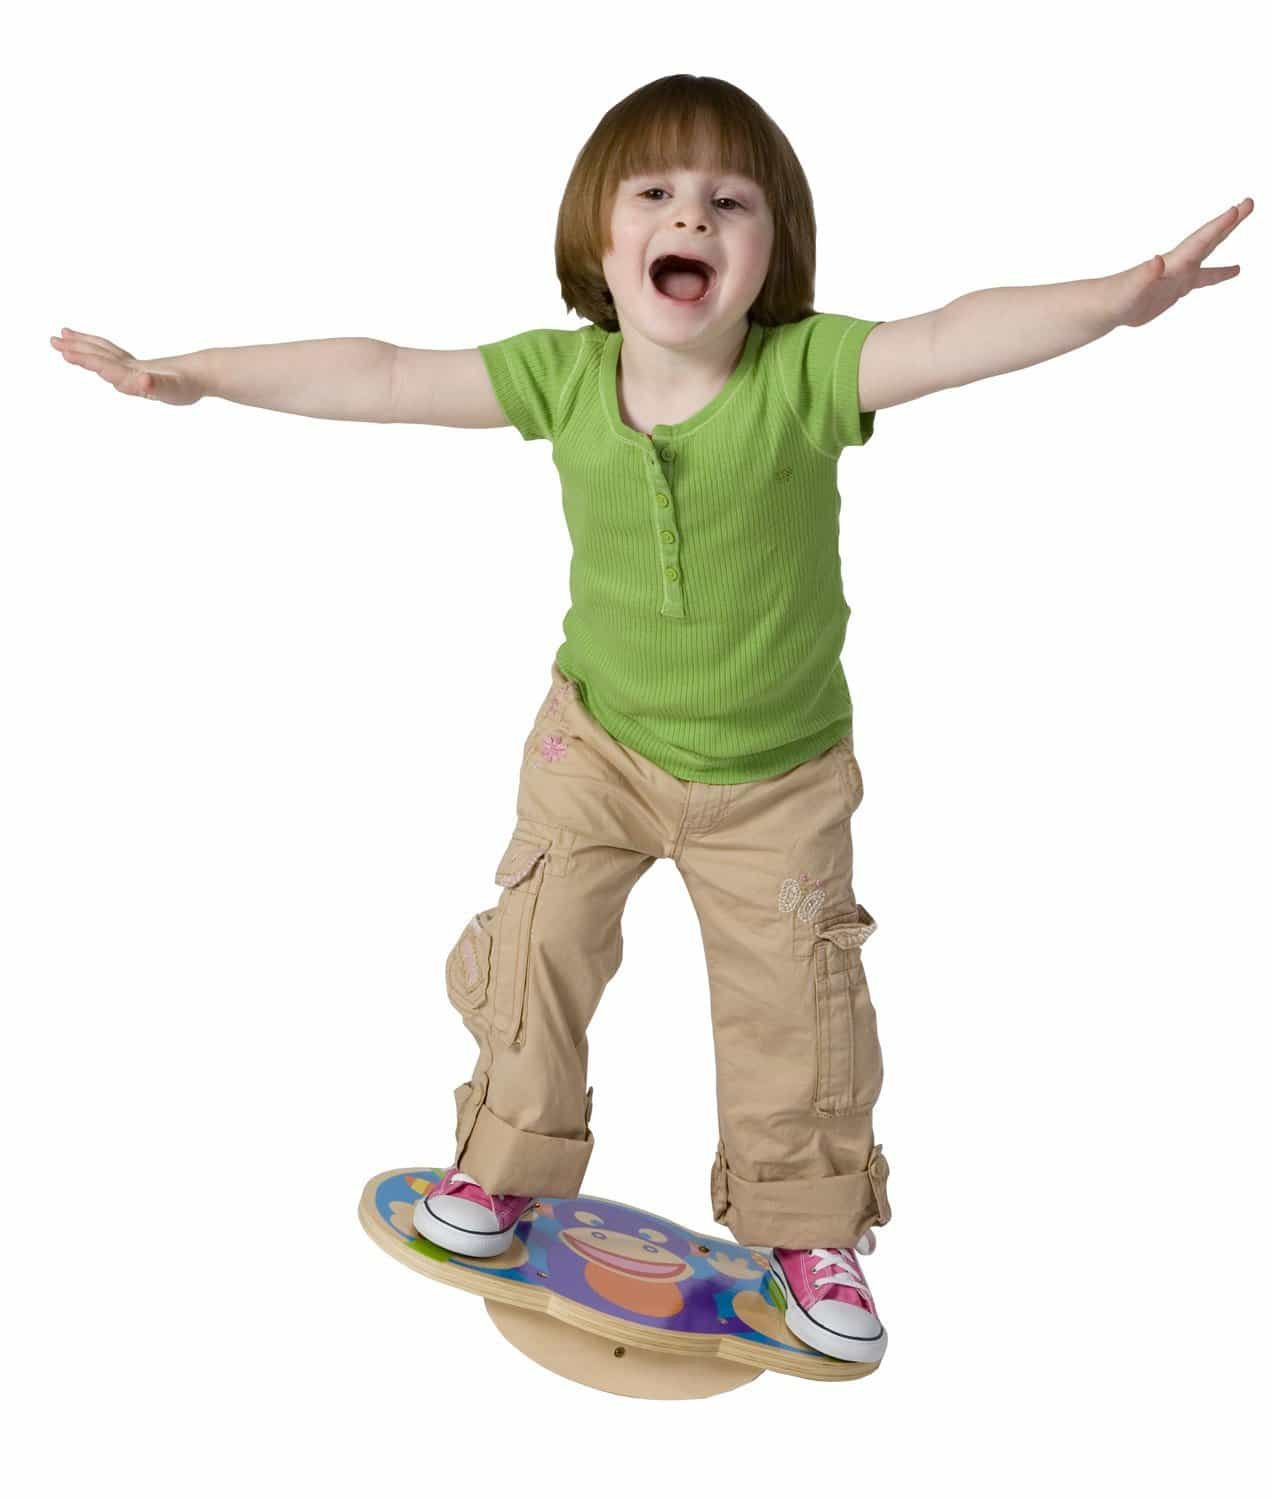 Balance Board Exercises For Back: Best Kids Balance Boards Of 2019